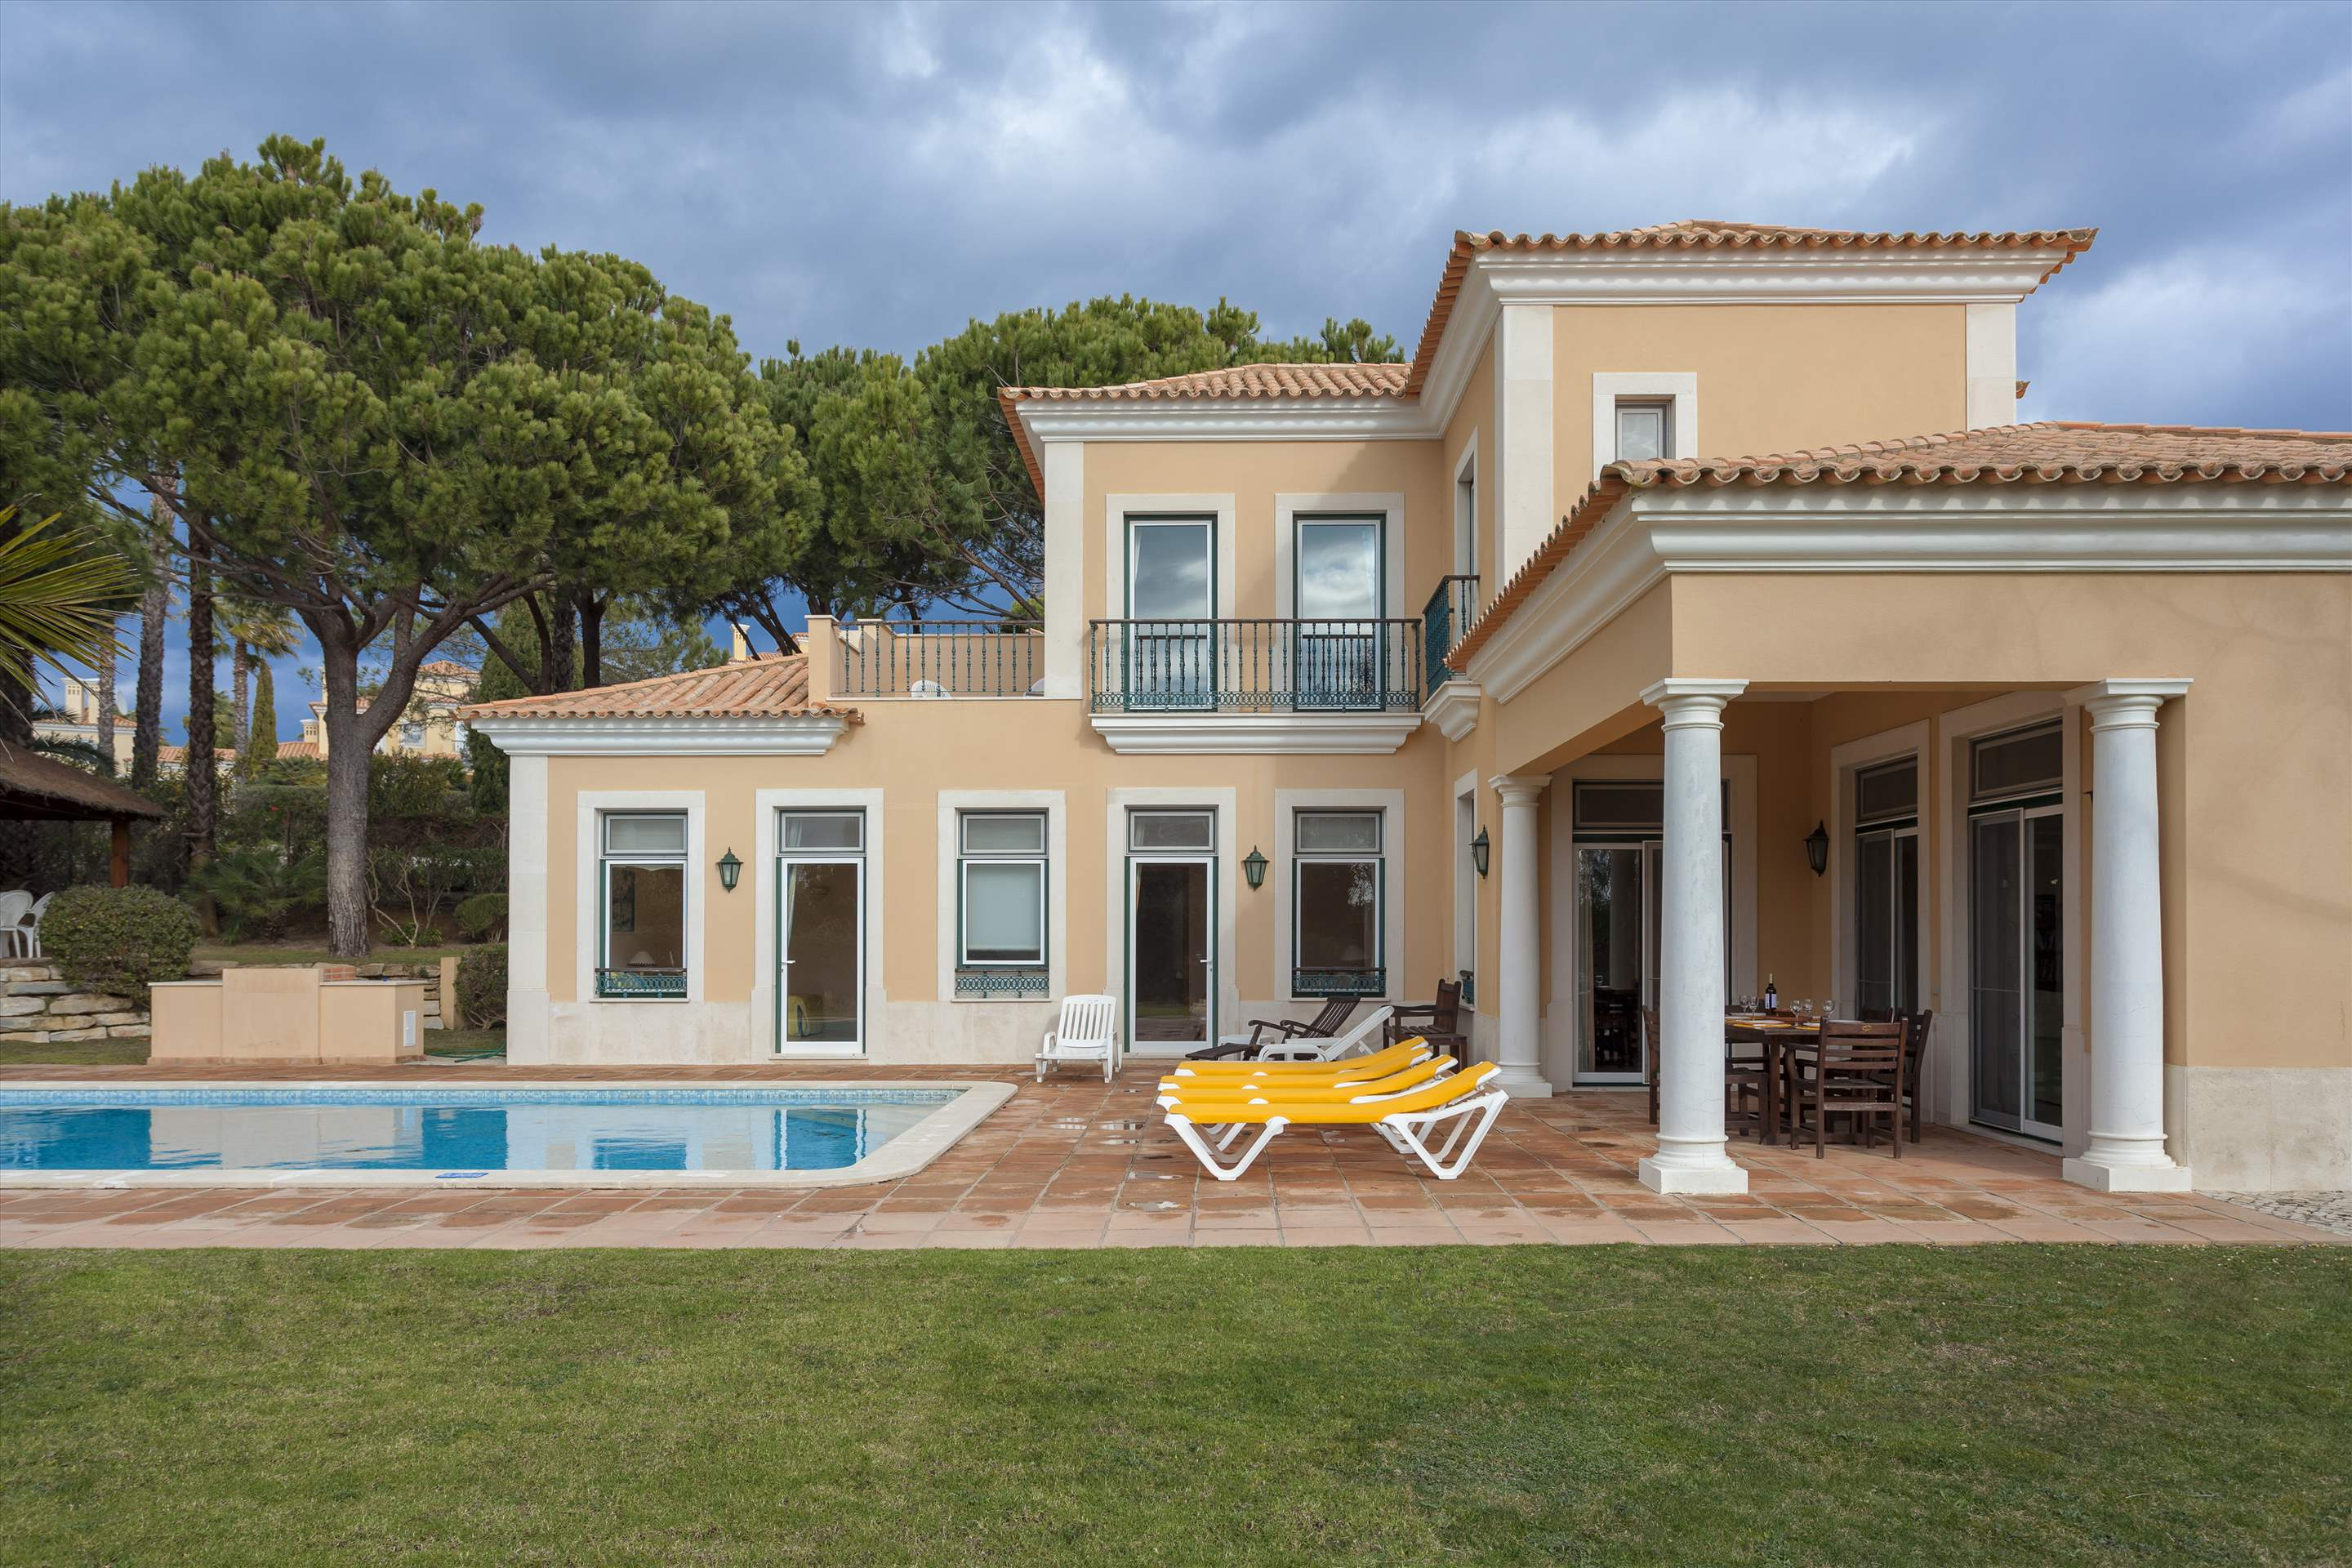 Villa Bella Vista 2, 3 bedroom villa in Vale do Lobo, Algarve Photo #9